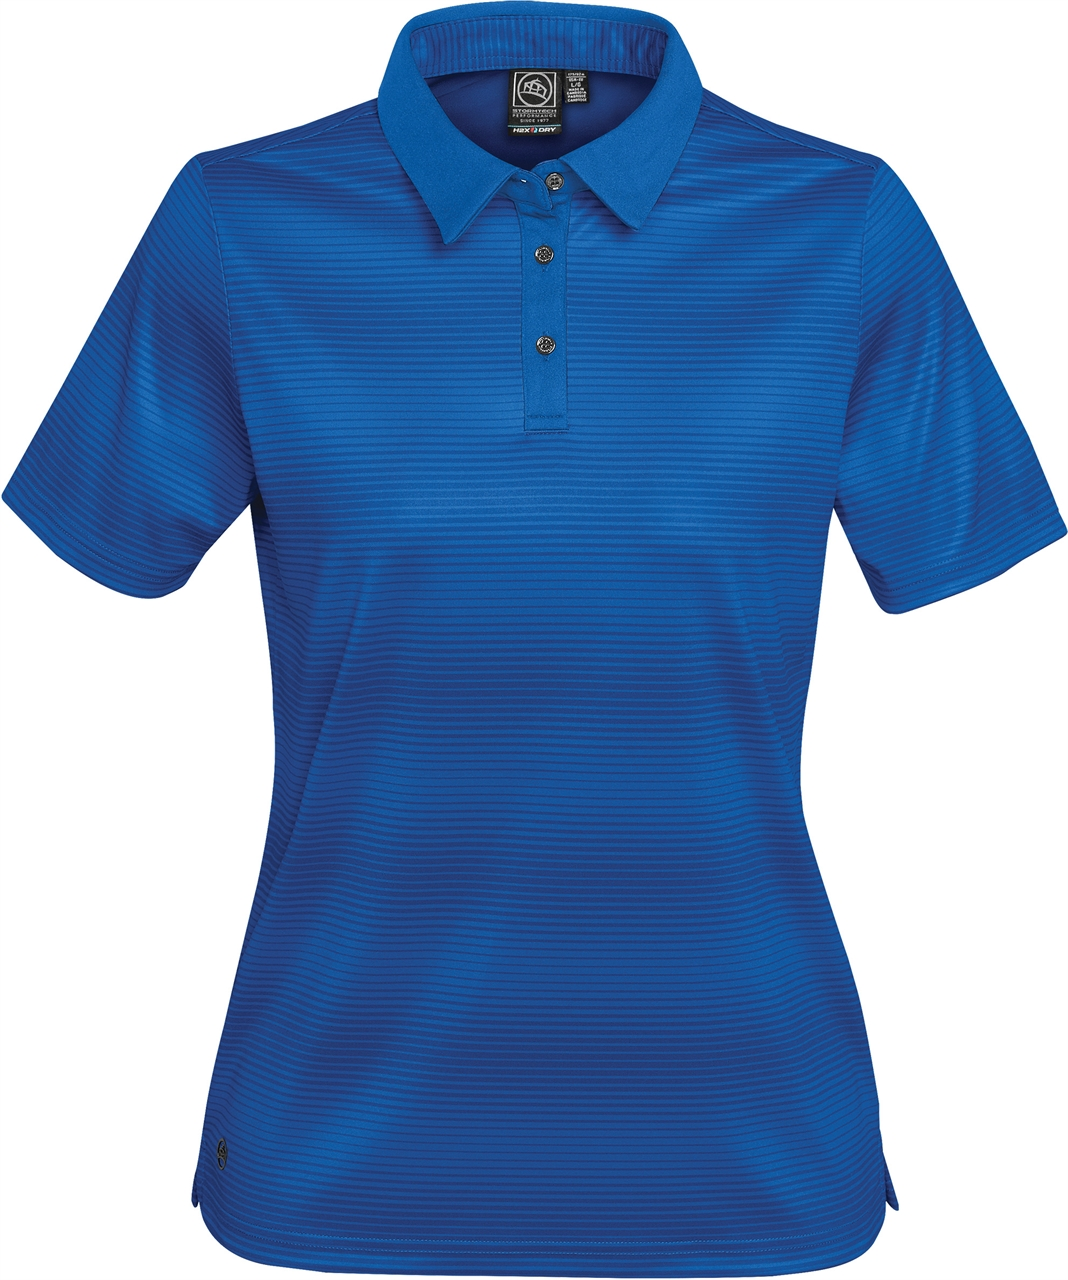 Picture of Stormtech Women's Vibe Performance Polo